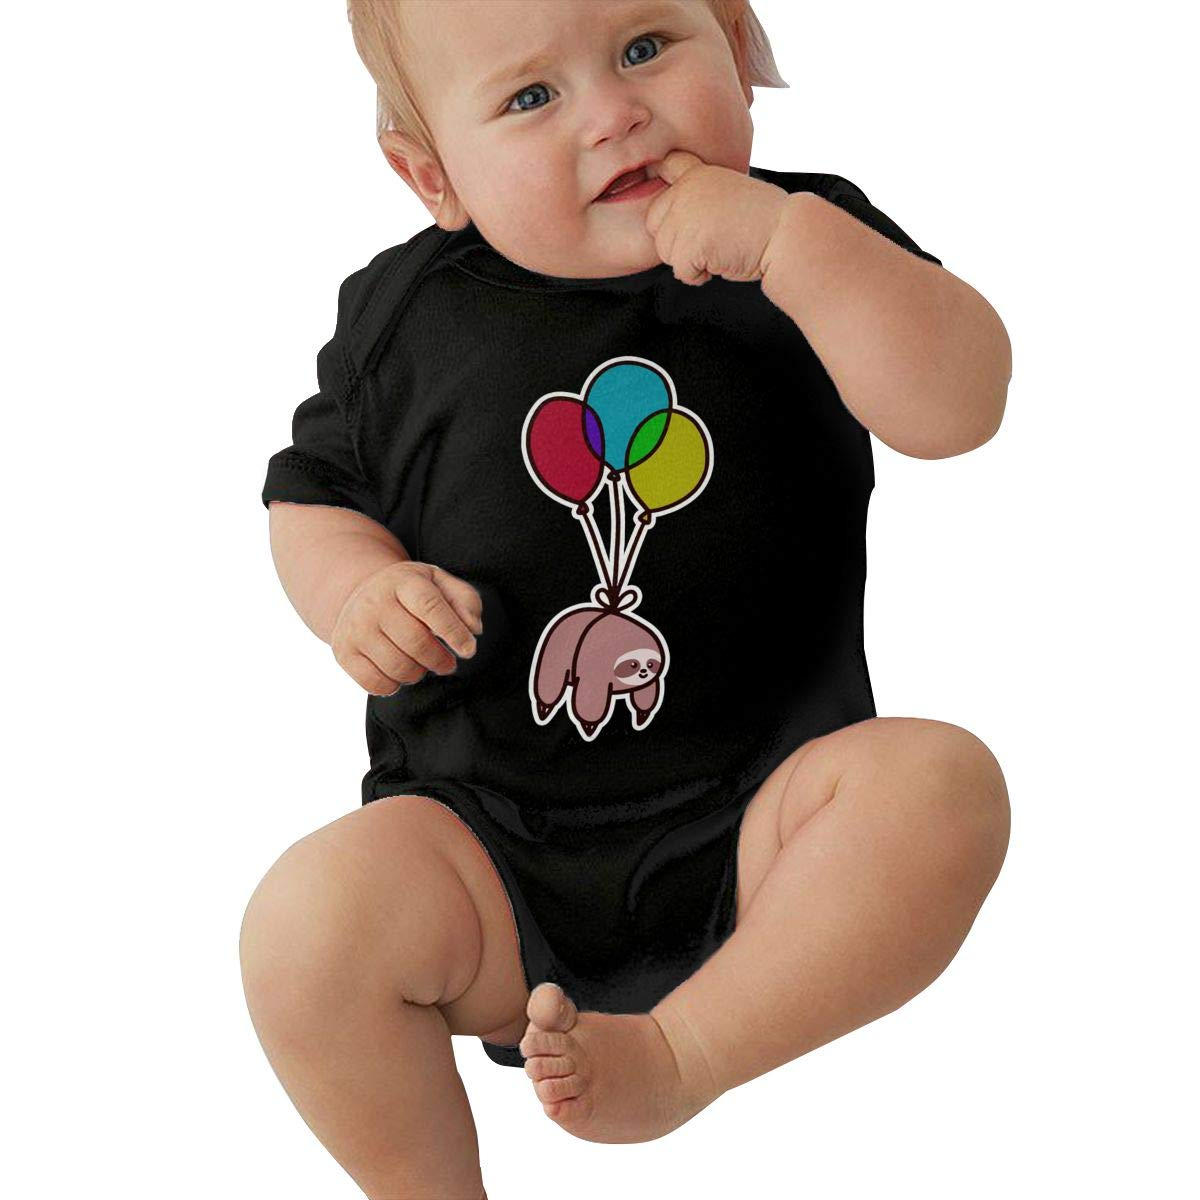 Balloon Sloth Toddler Baby Girl Boy Romper Jumpsuit Outfit Short Sleeved Bodysuit Tops Clothes